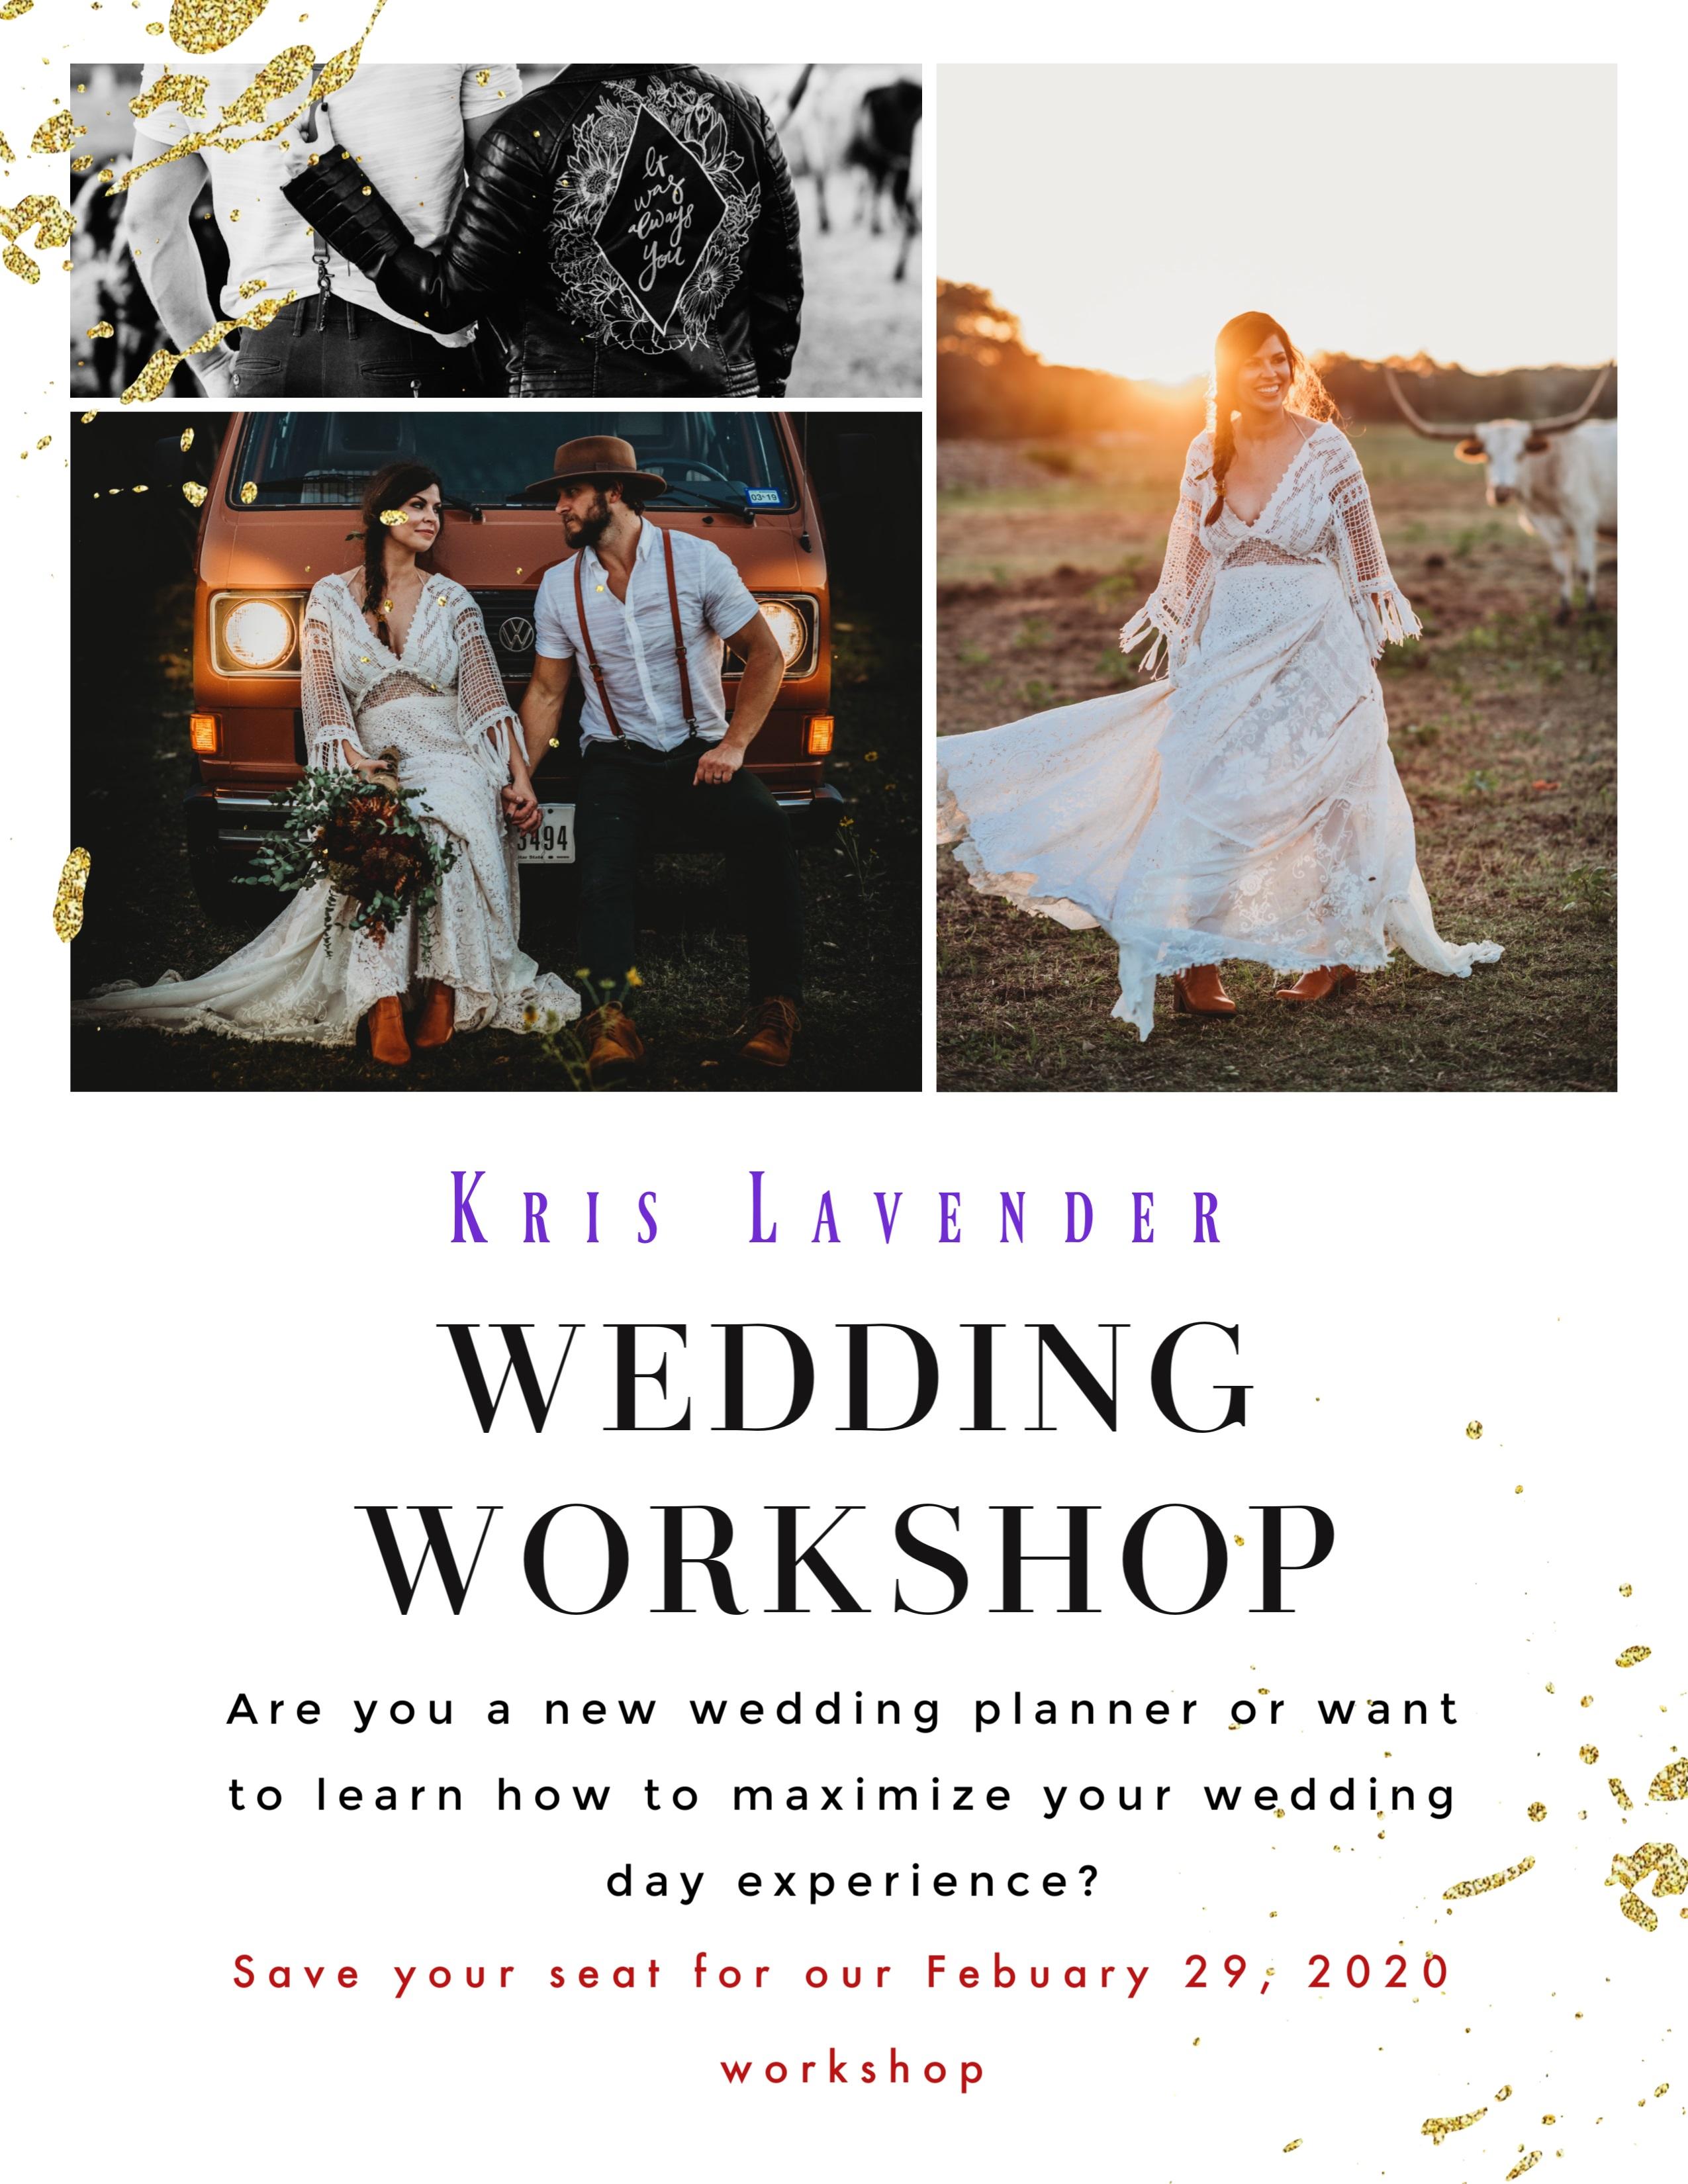 Kris Lavender Wedding Workshop